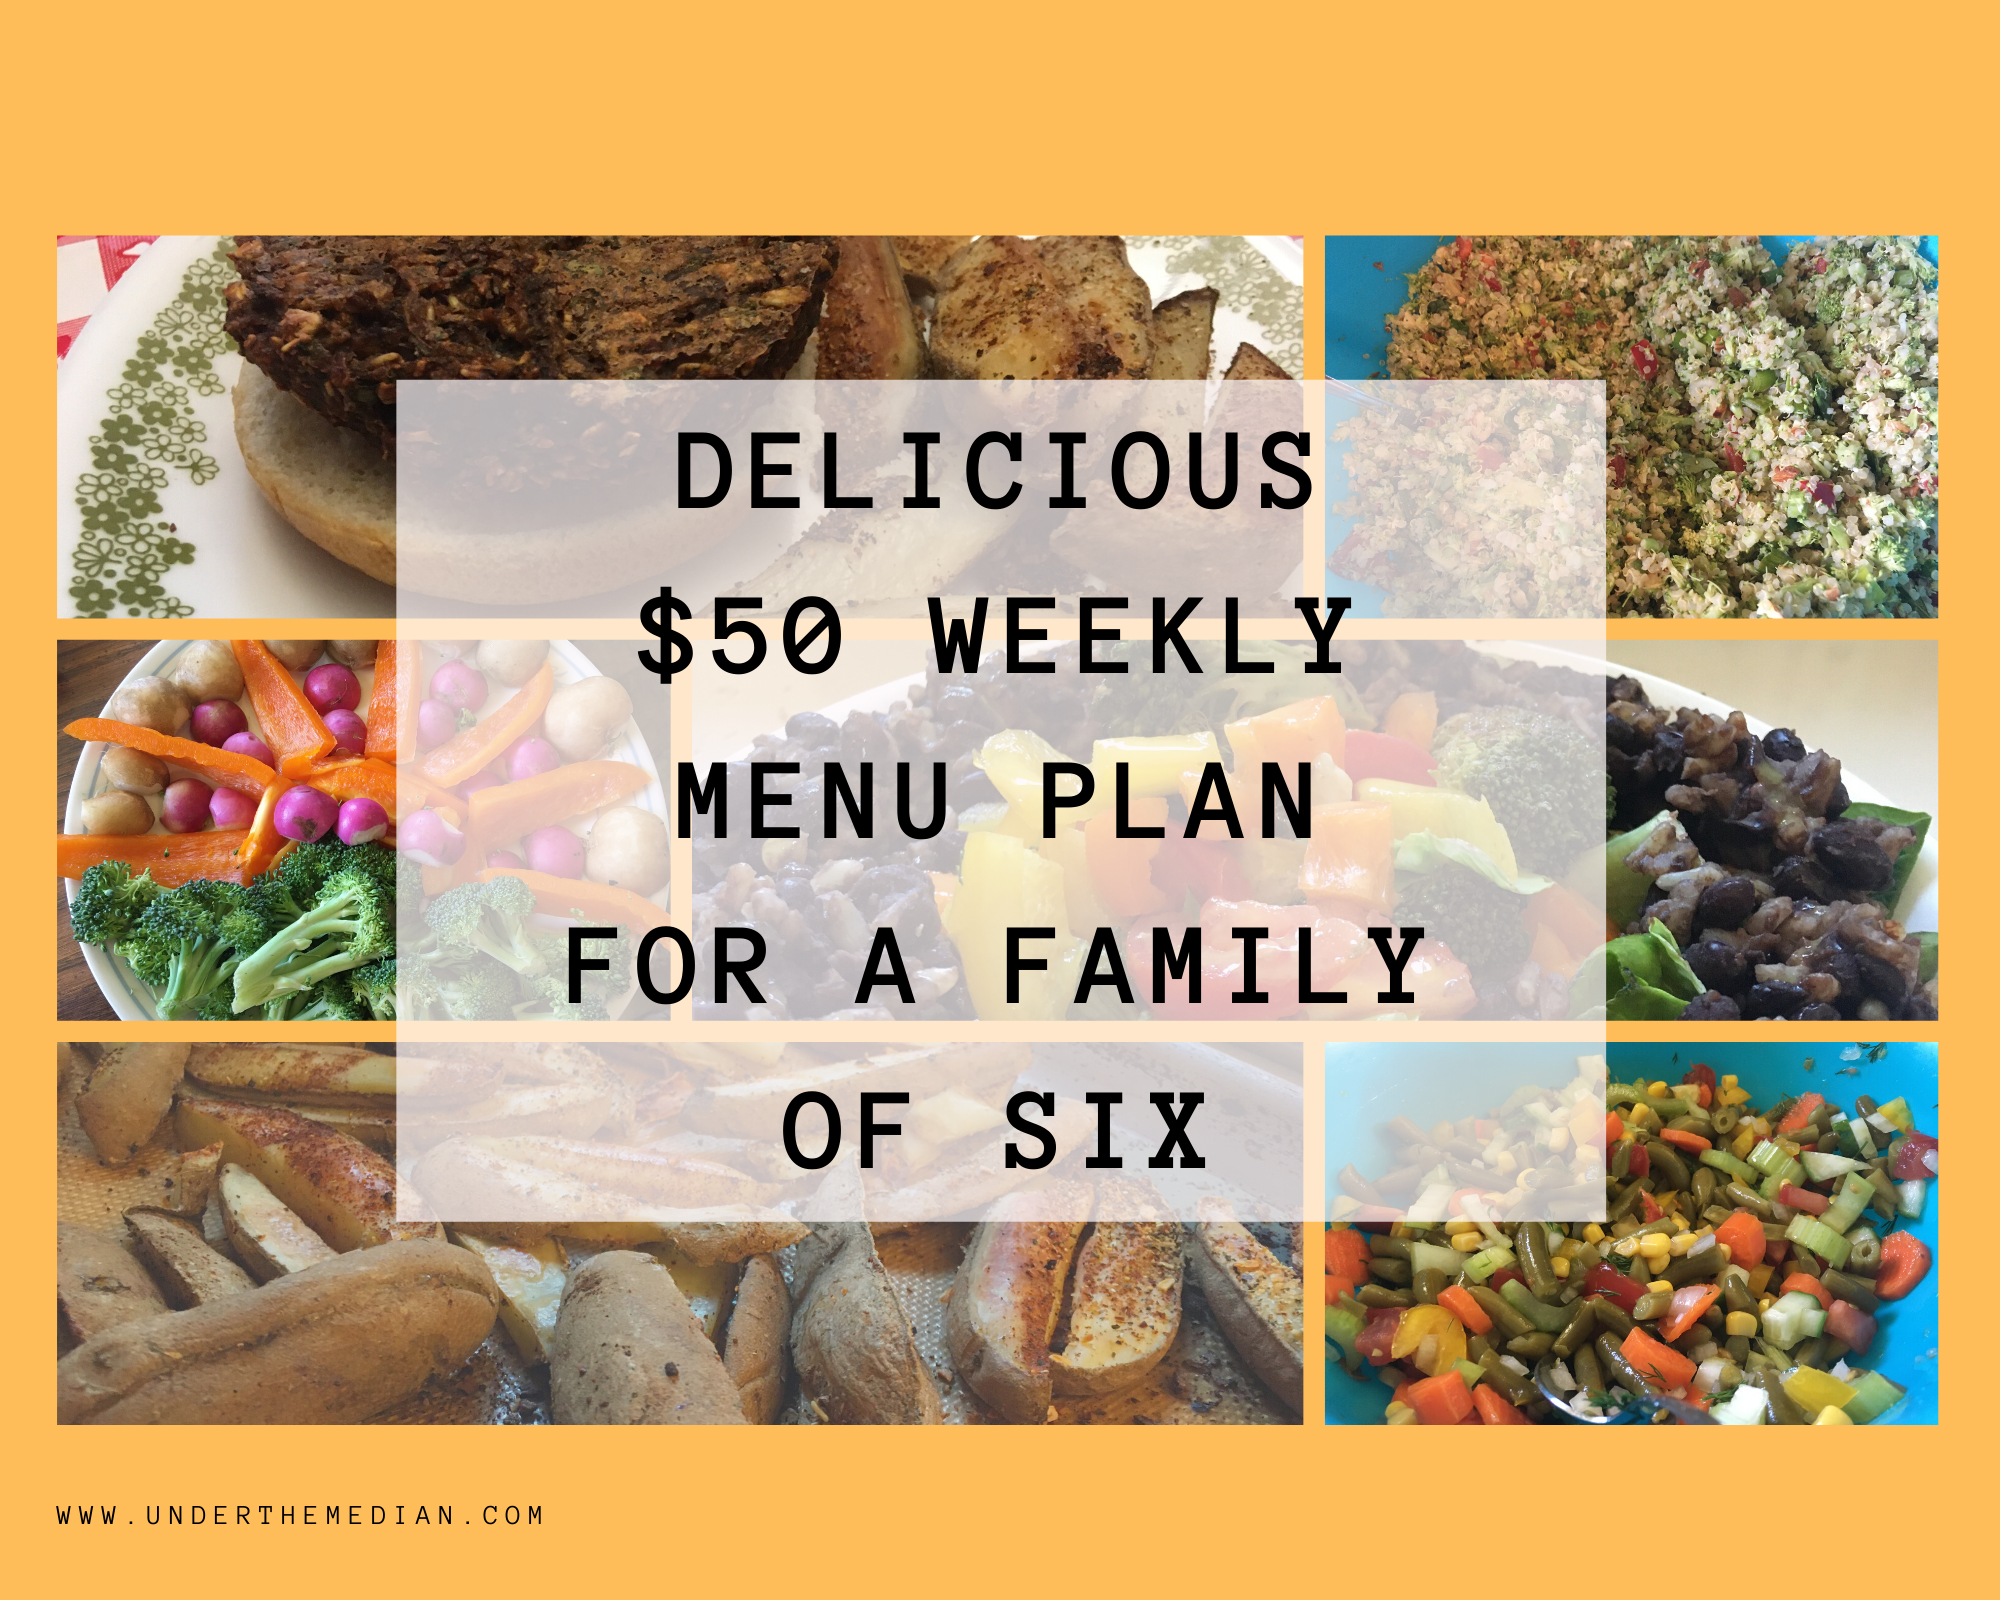 Delicious $50 Weekly Menu Plan for a Family of 6